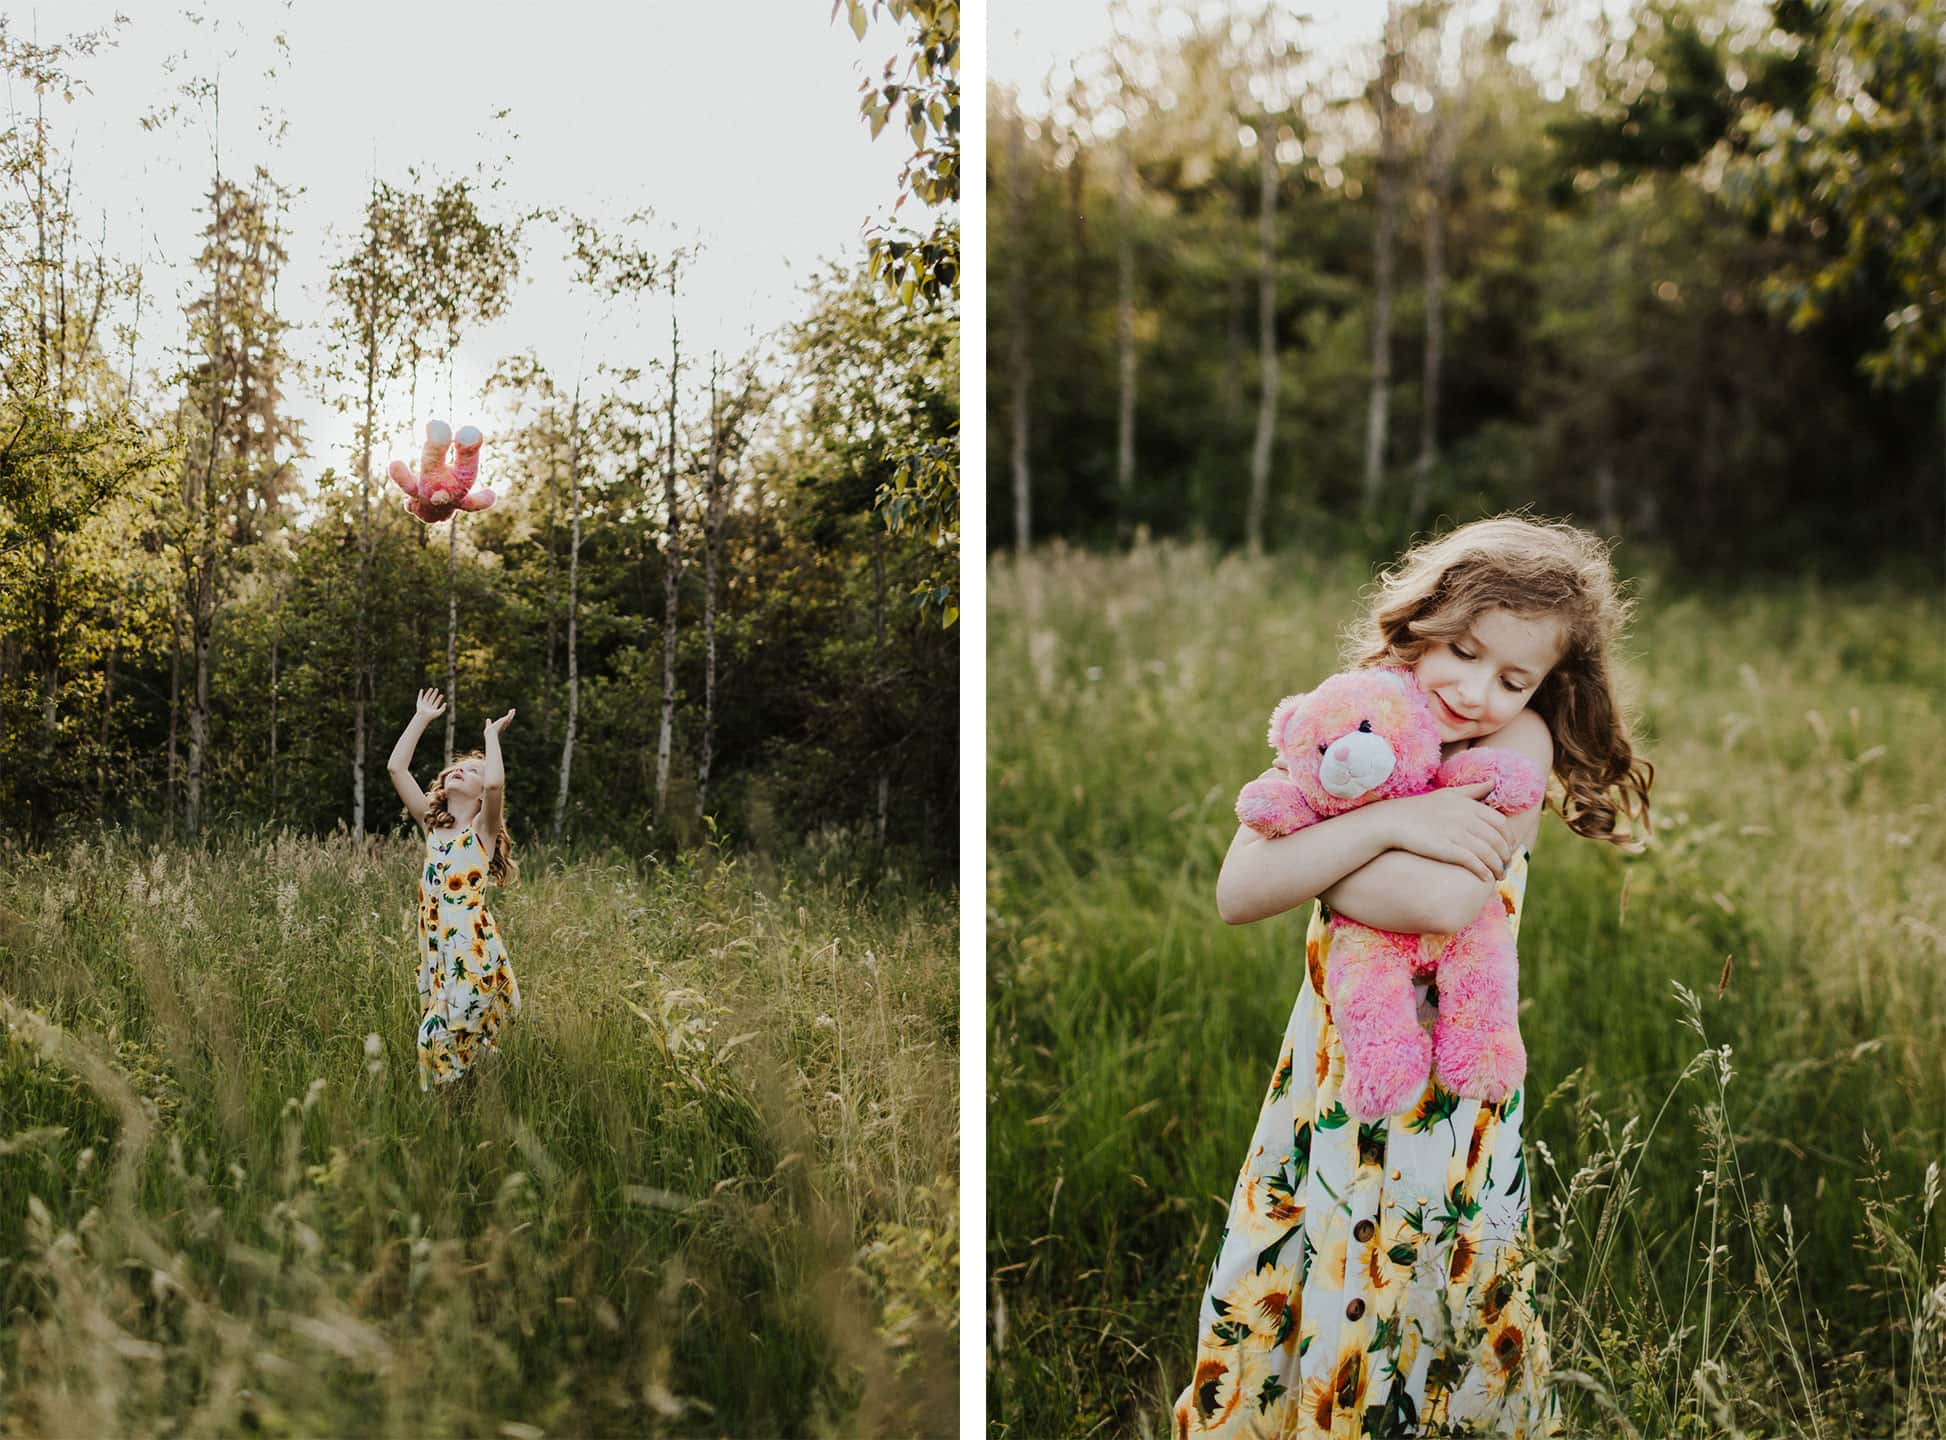 photo of child hugging teddy bear in grassy field